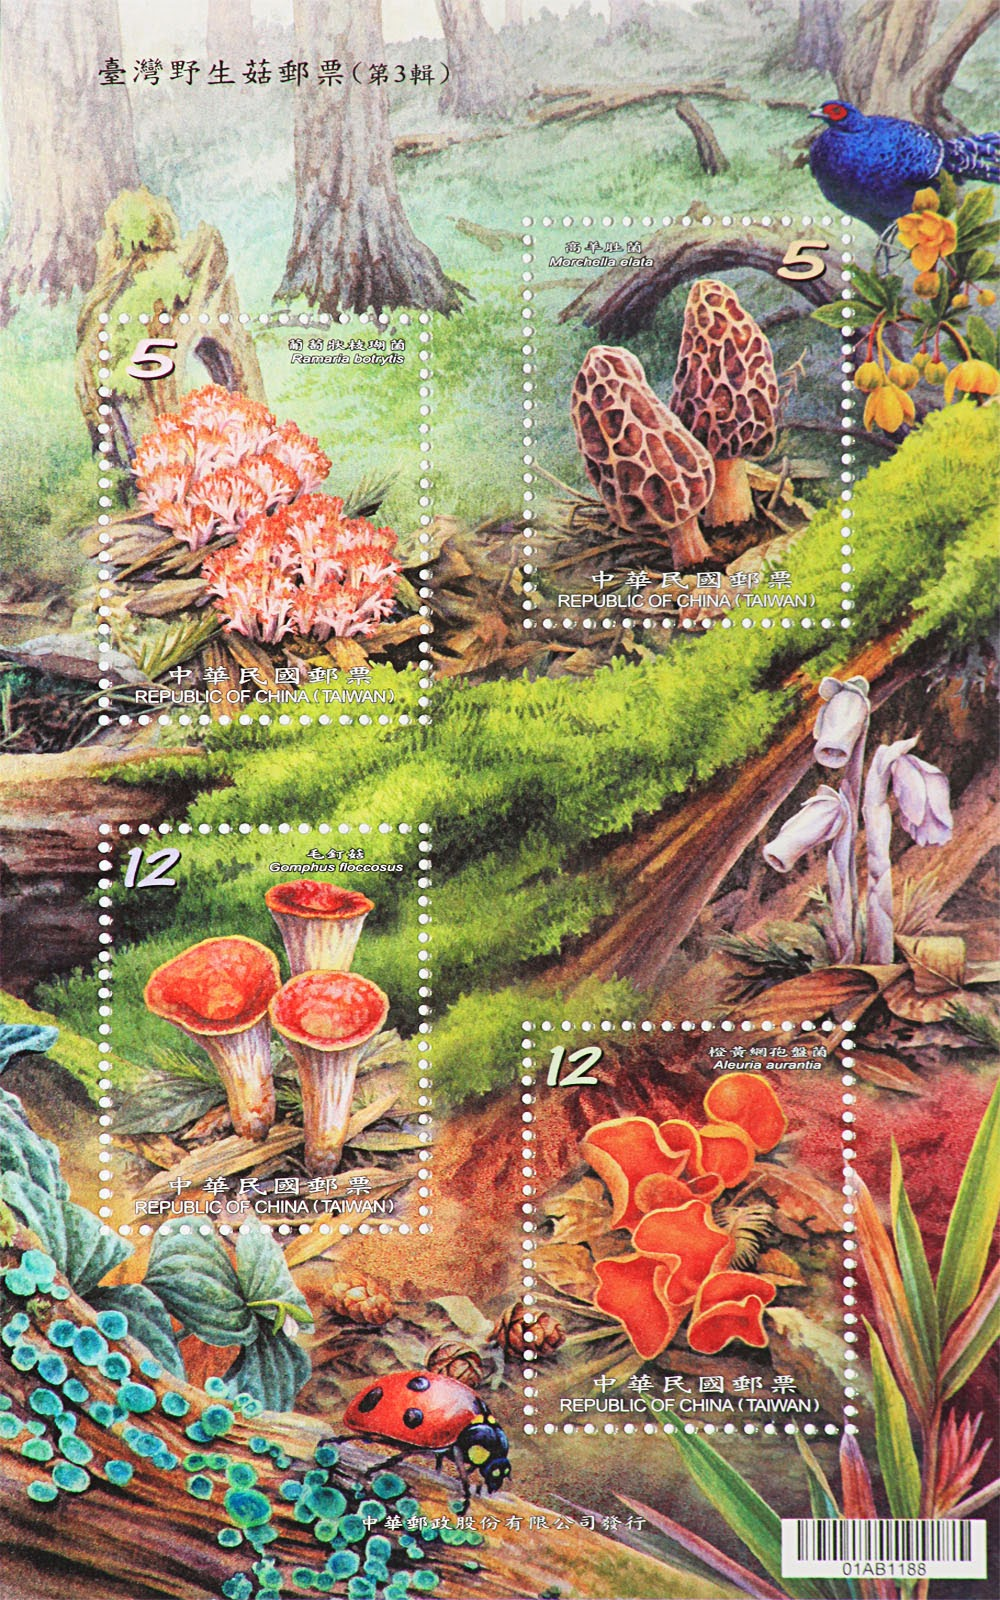 2013 Wild Mushrooms of Taiwan Miniature Sheet